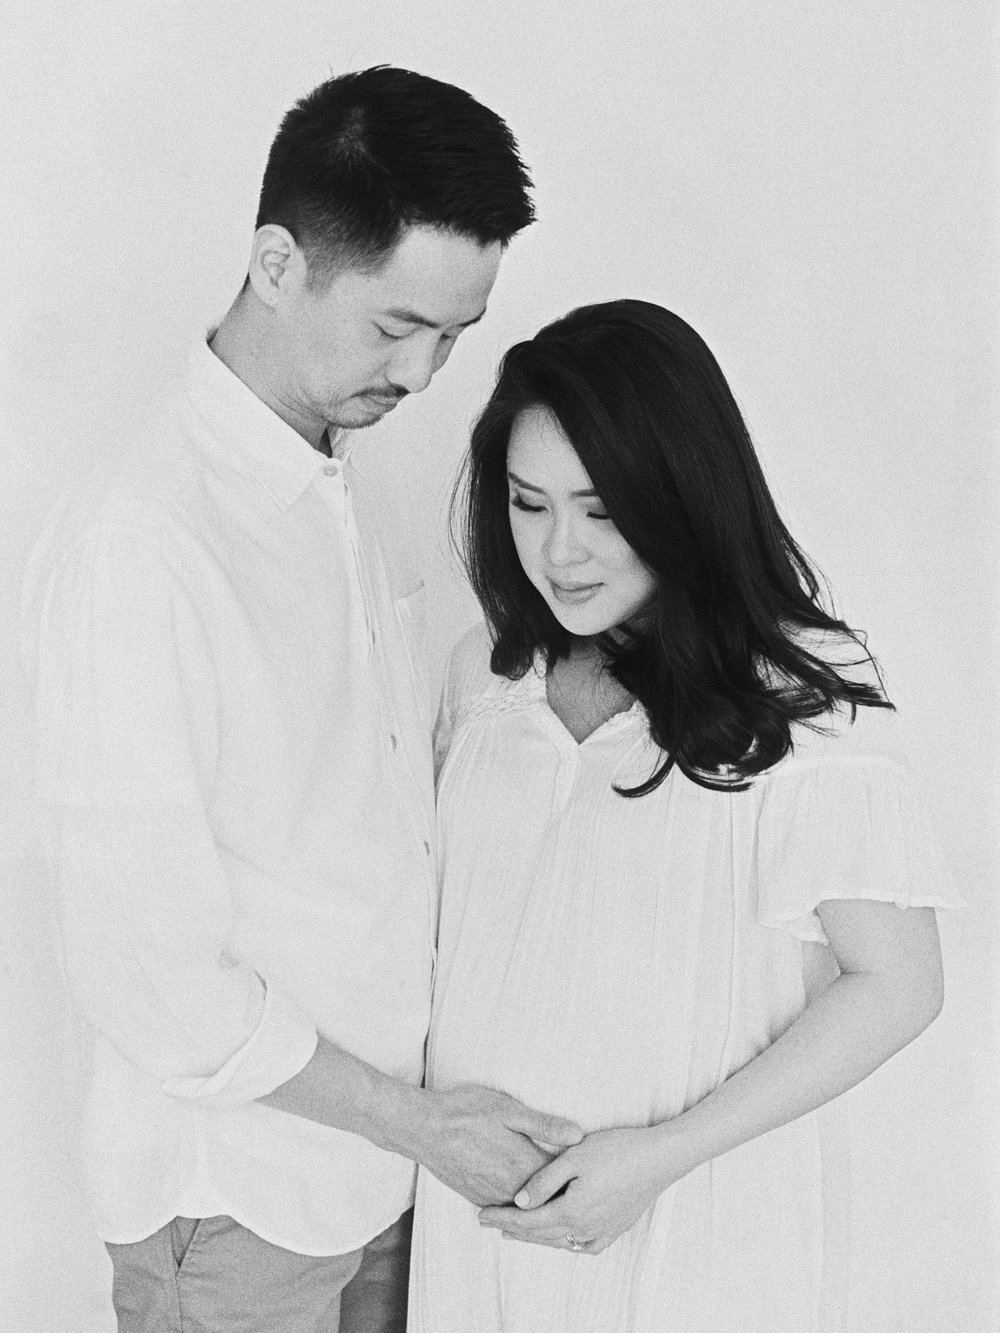 Gaby and Tim-Relaxed-Airy-Simple-Maternity Portrait Photoshoot-At Home-Jakarta-Studio June-Film Photography & Styling-38.jpg